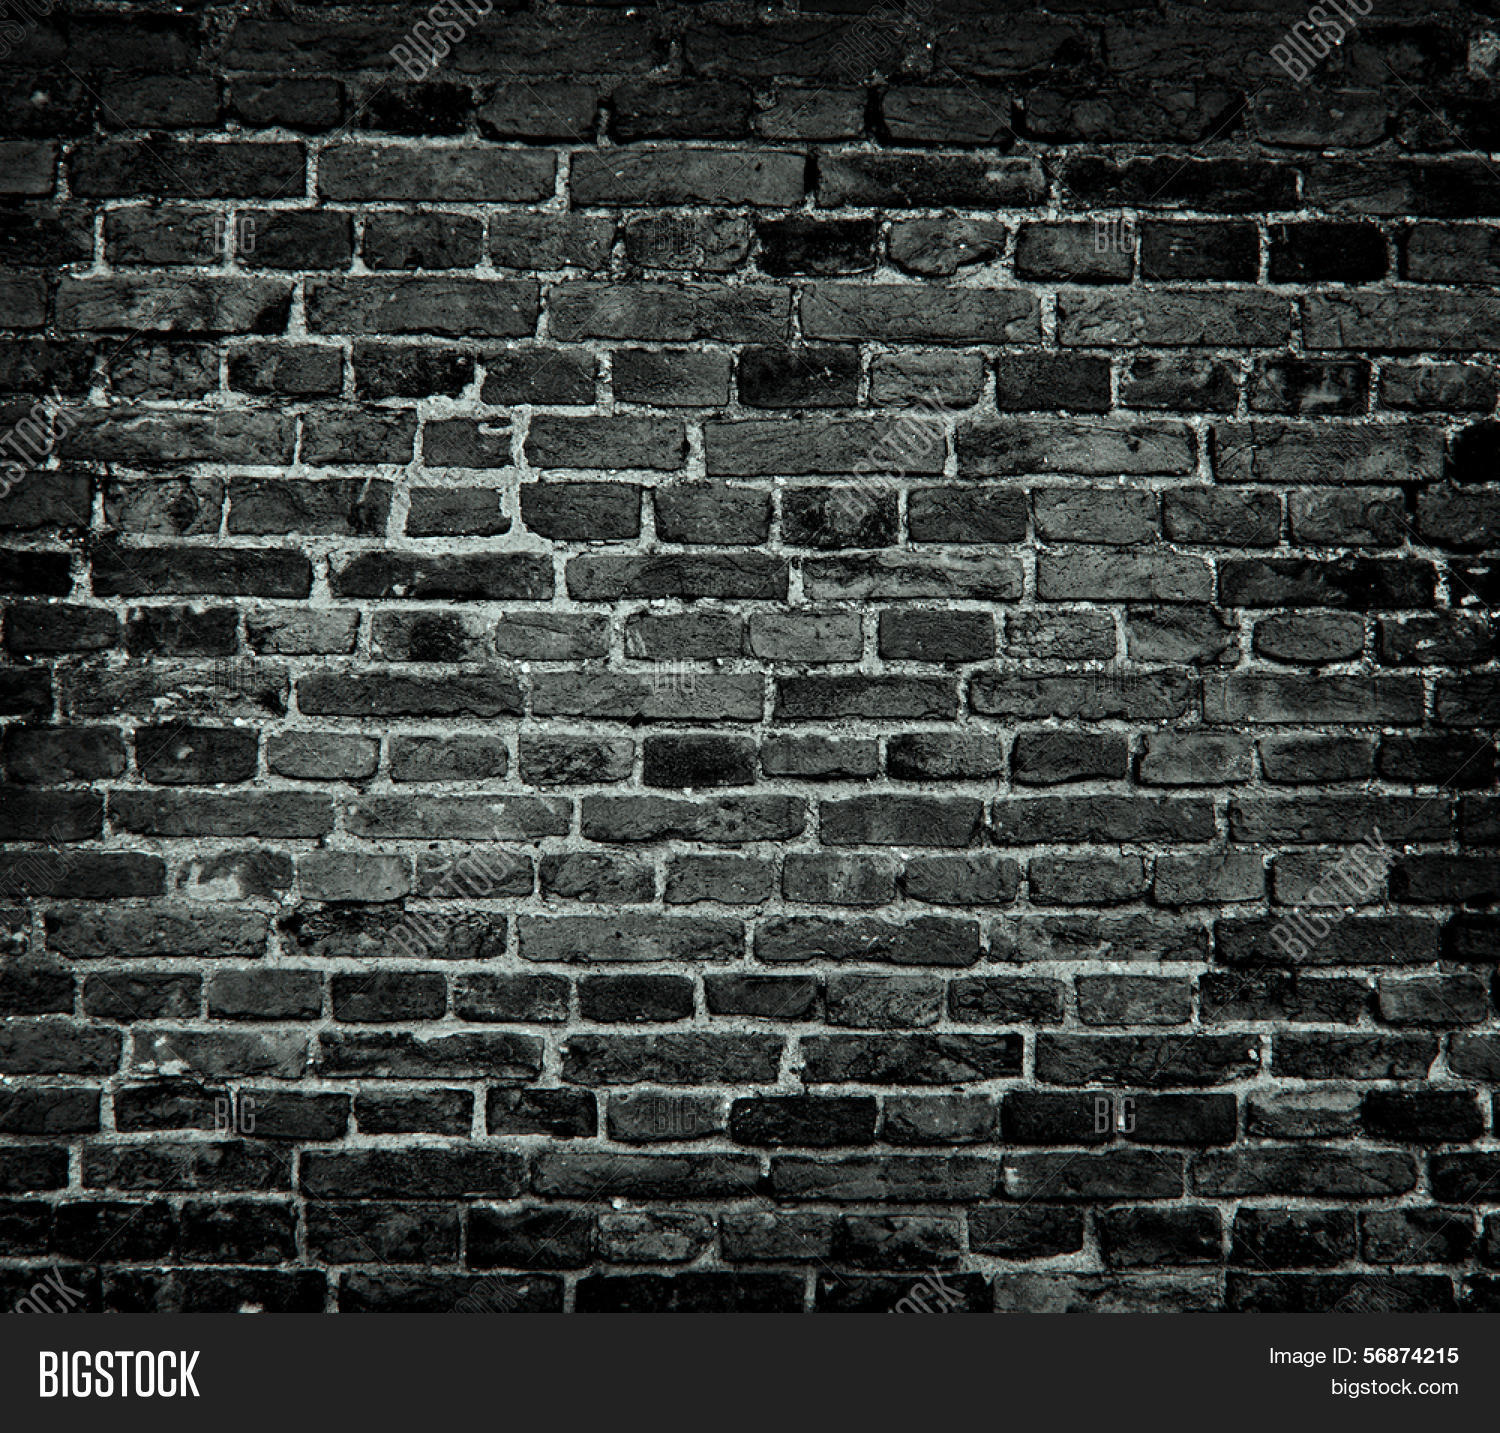 Dark brick wall images galleries with for Black and white wallpaper for walls